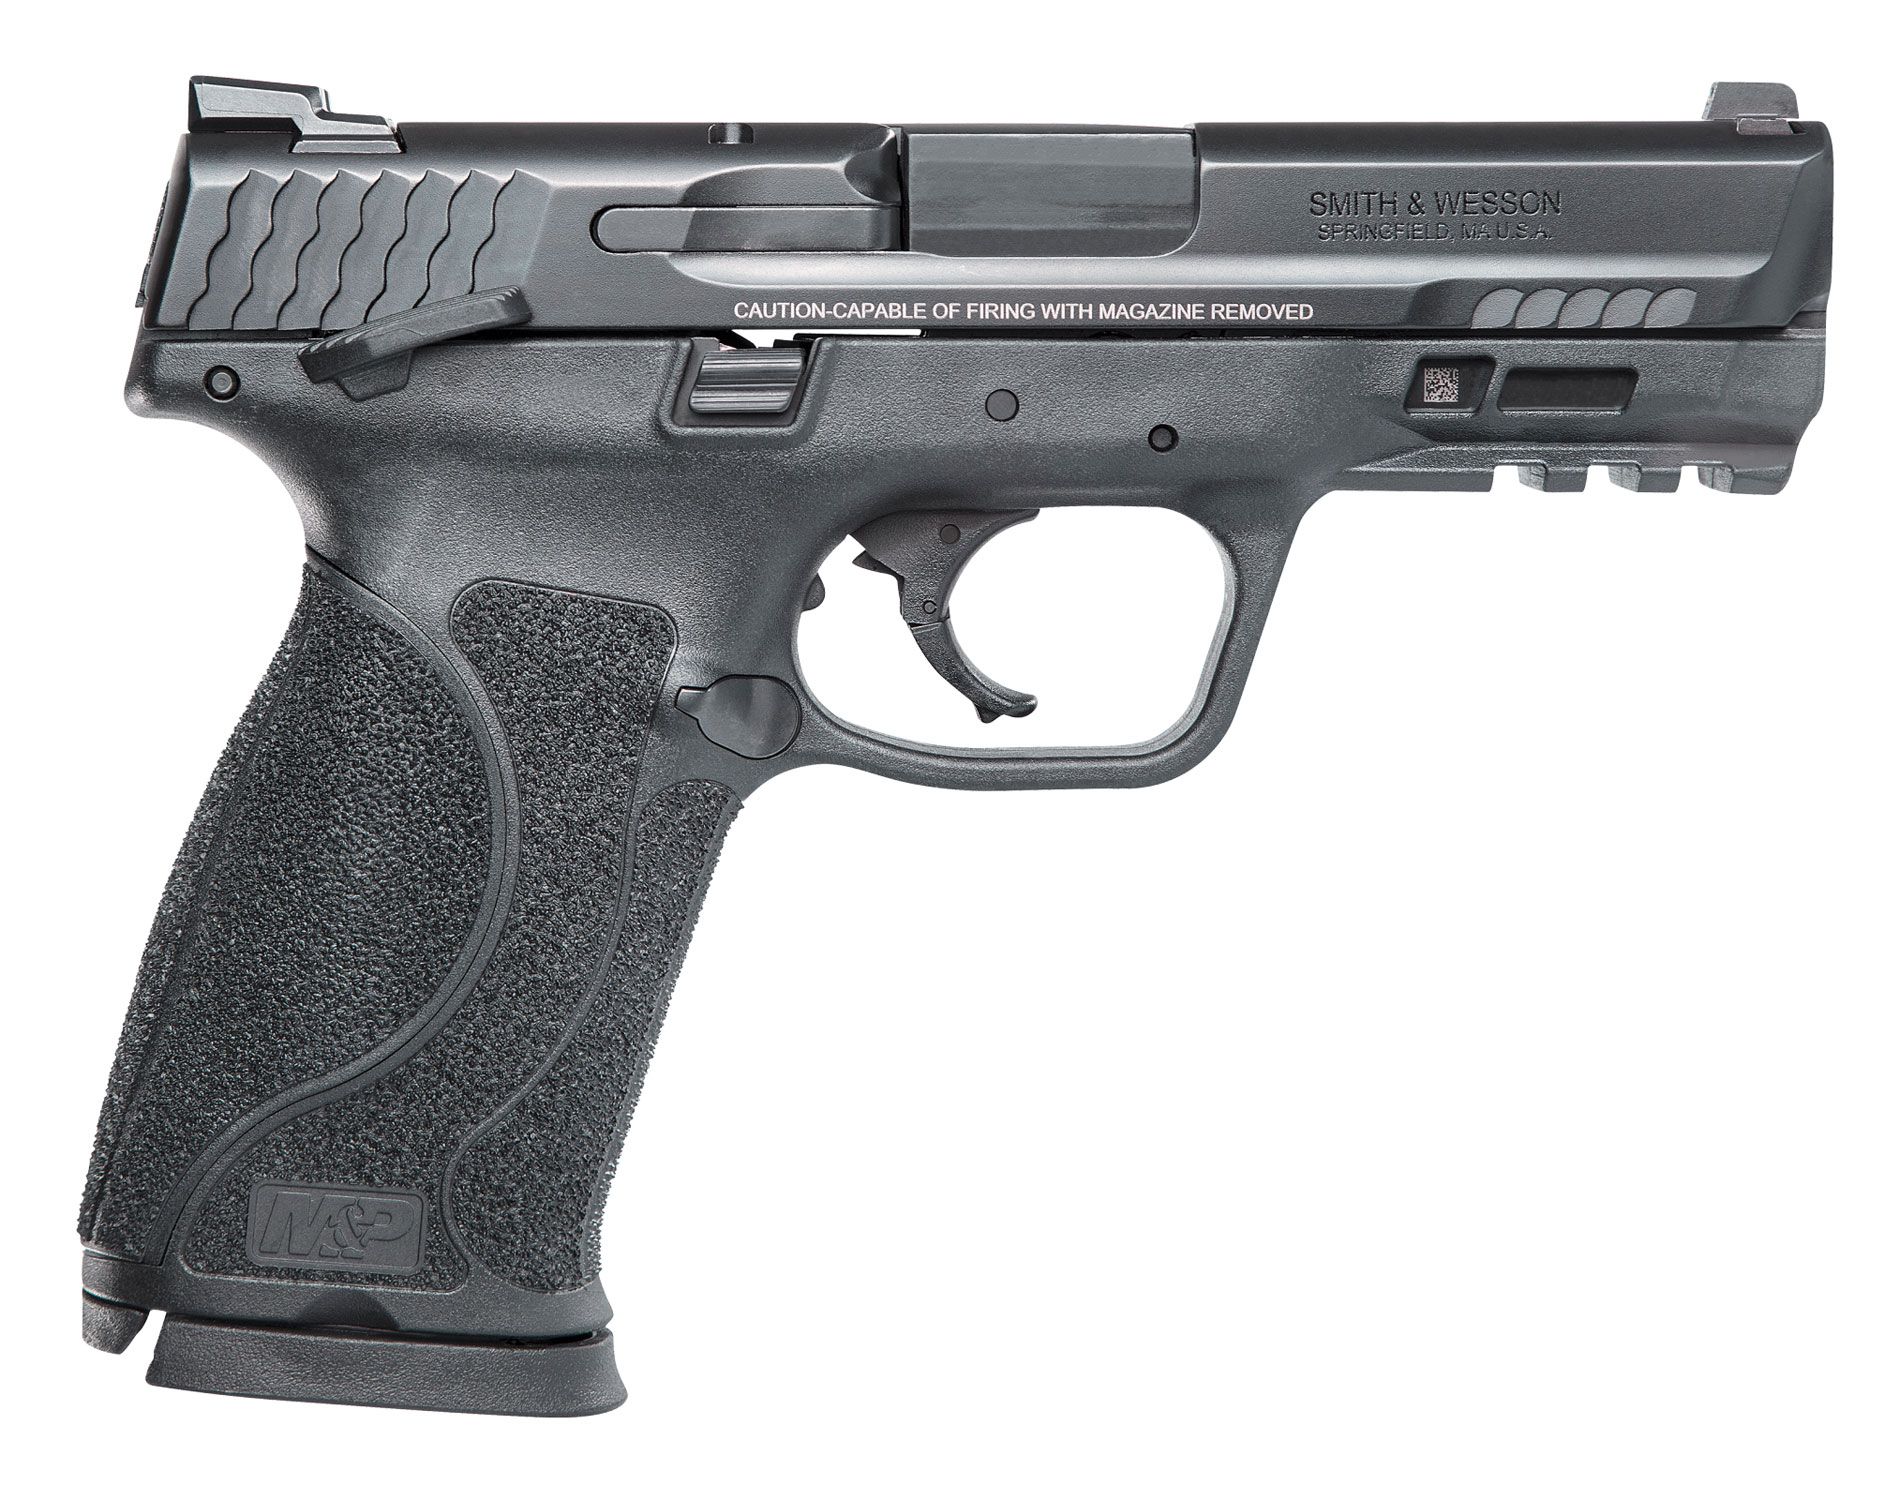 Smith & Wesson 12466 M&P 9 M2.0 Compact *MA Compliant* 9mm Luger Double 4